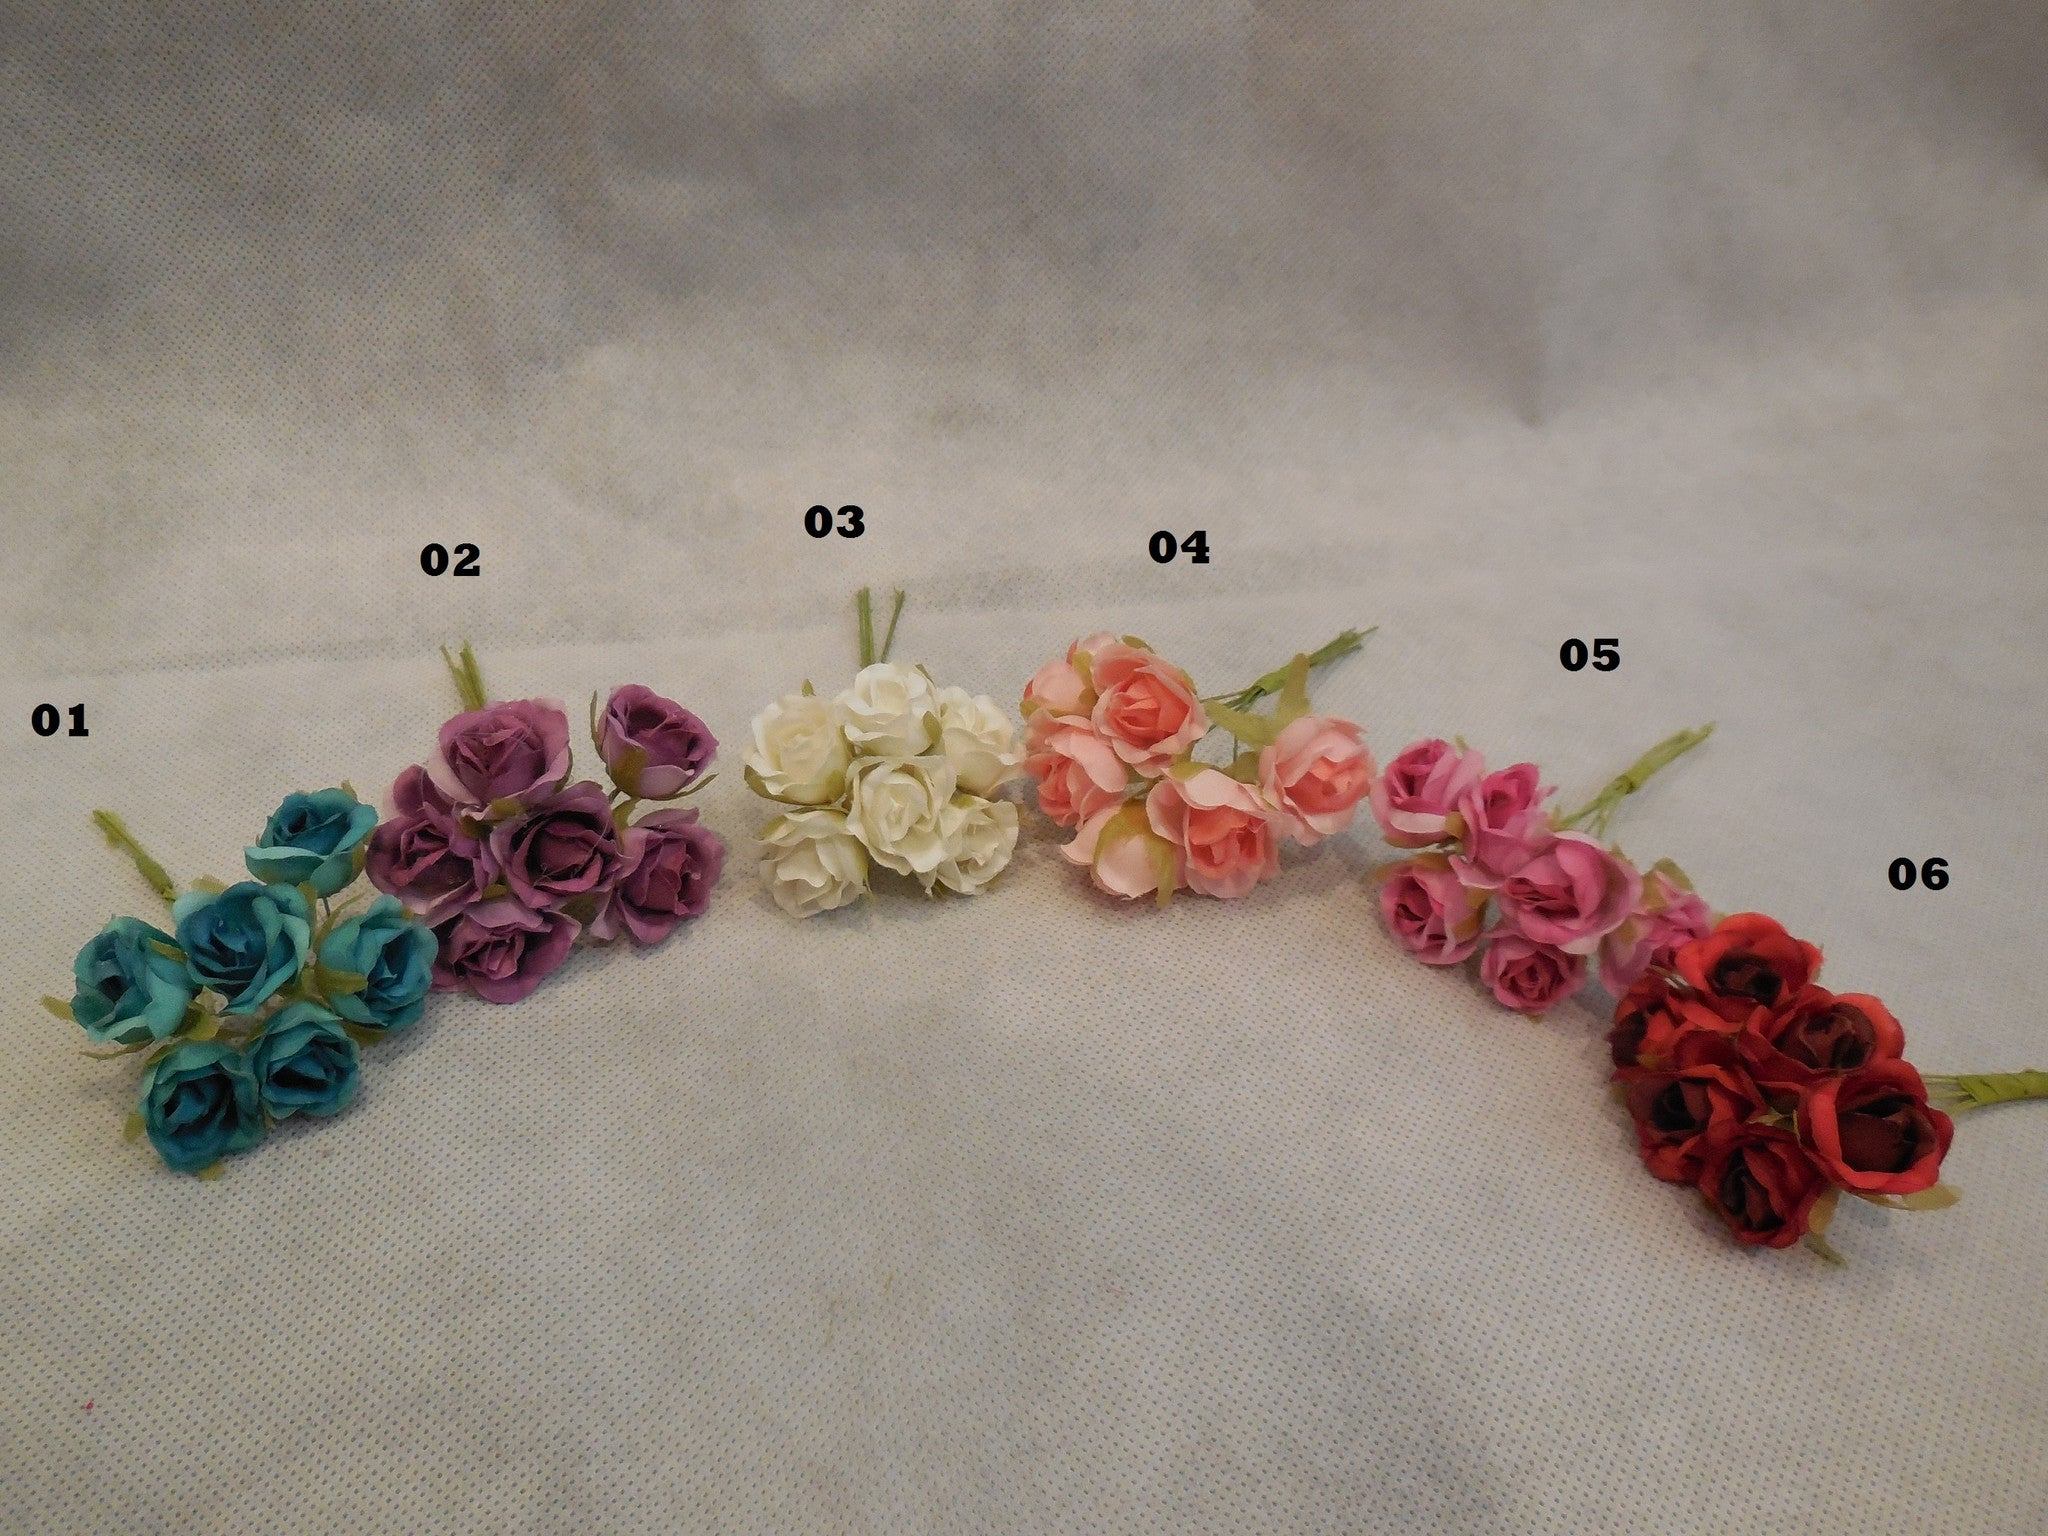 6 Mini Fabric Rose Wire Stems For Wedding Bridal Crown Craft 6colour Craftuneed